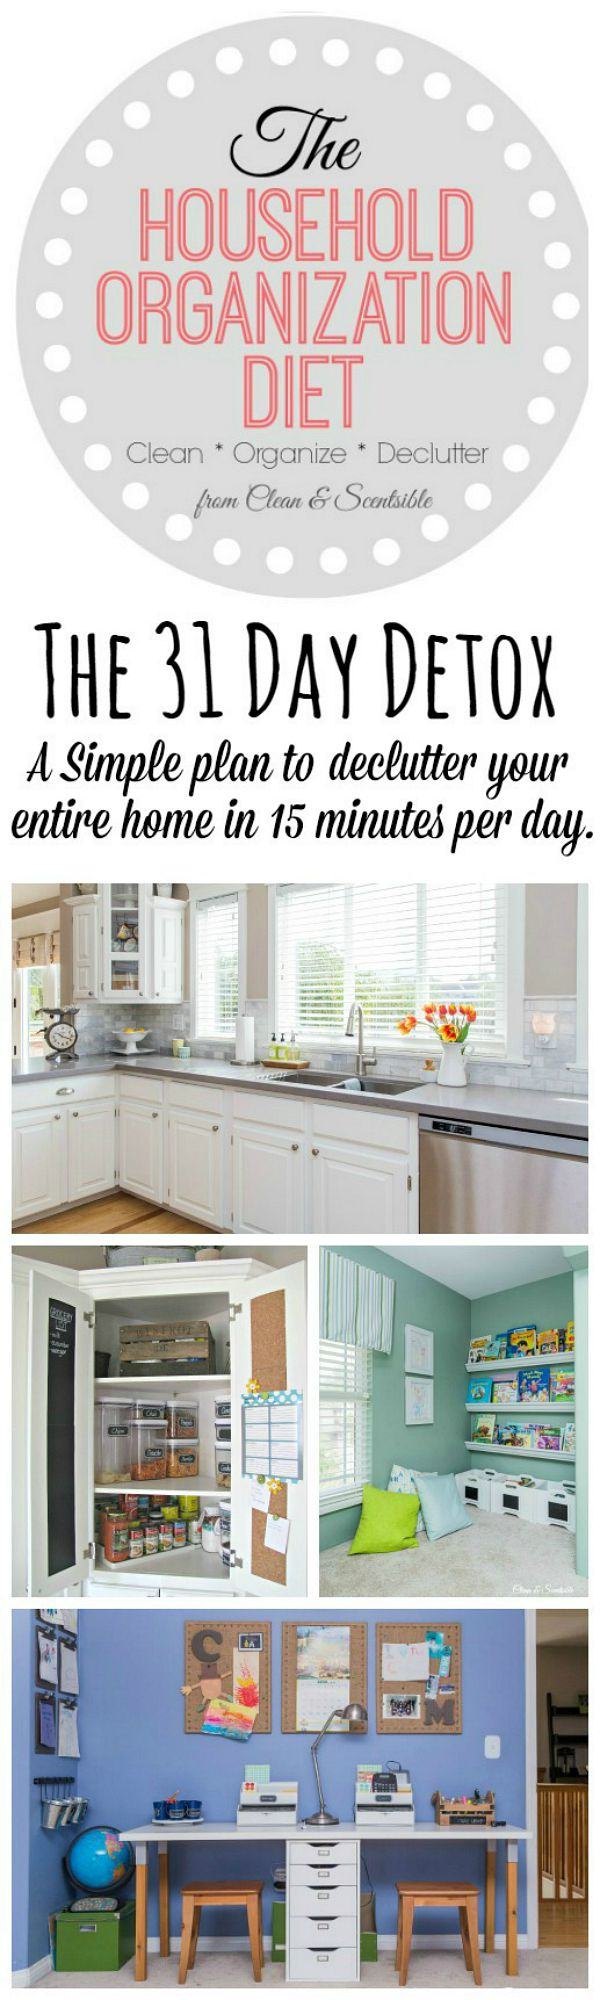 House decluttering plan 28 images 91 day declutter for Declutter house plan